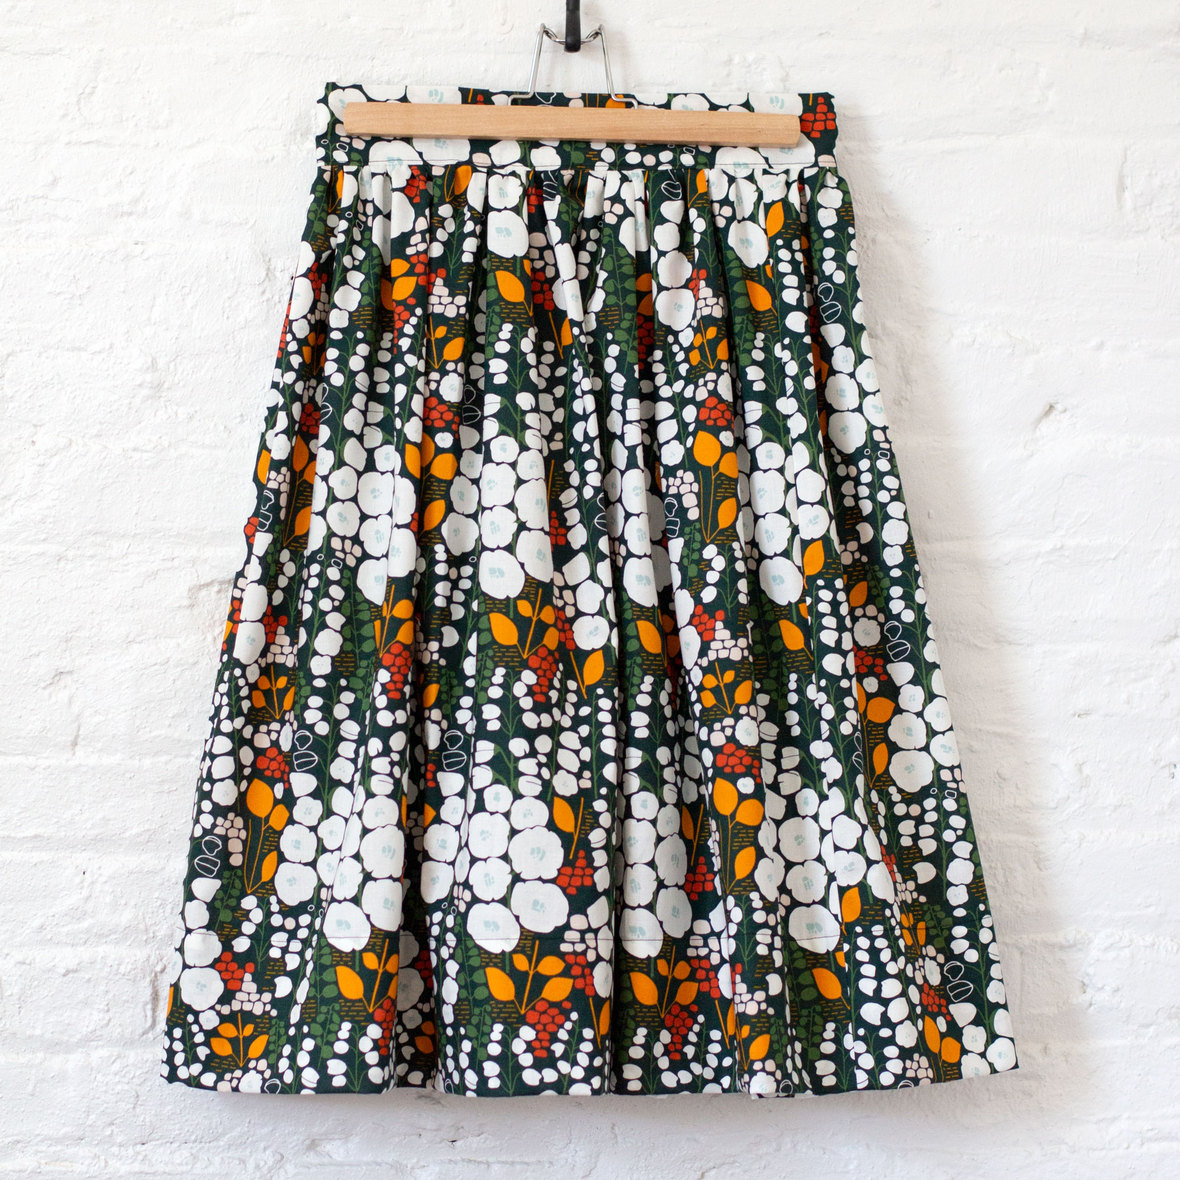 cloud 9 - gertie skirt - by blog for better sewing